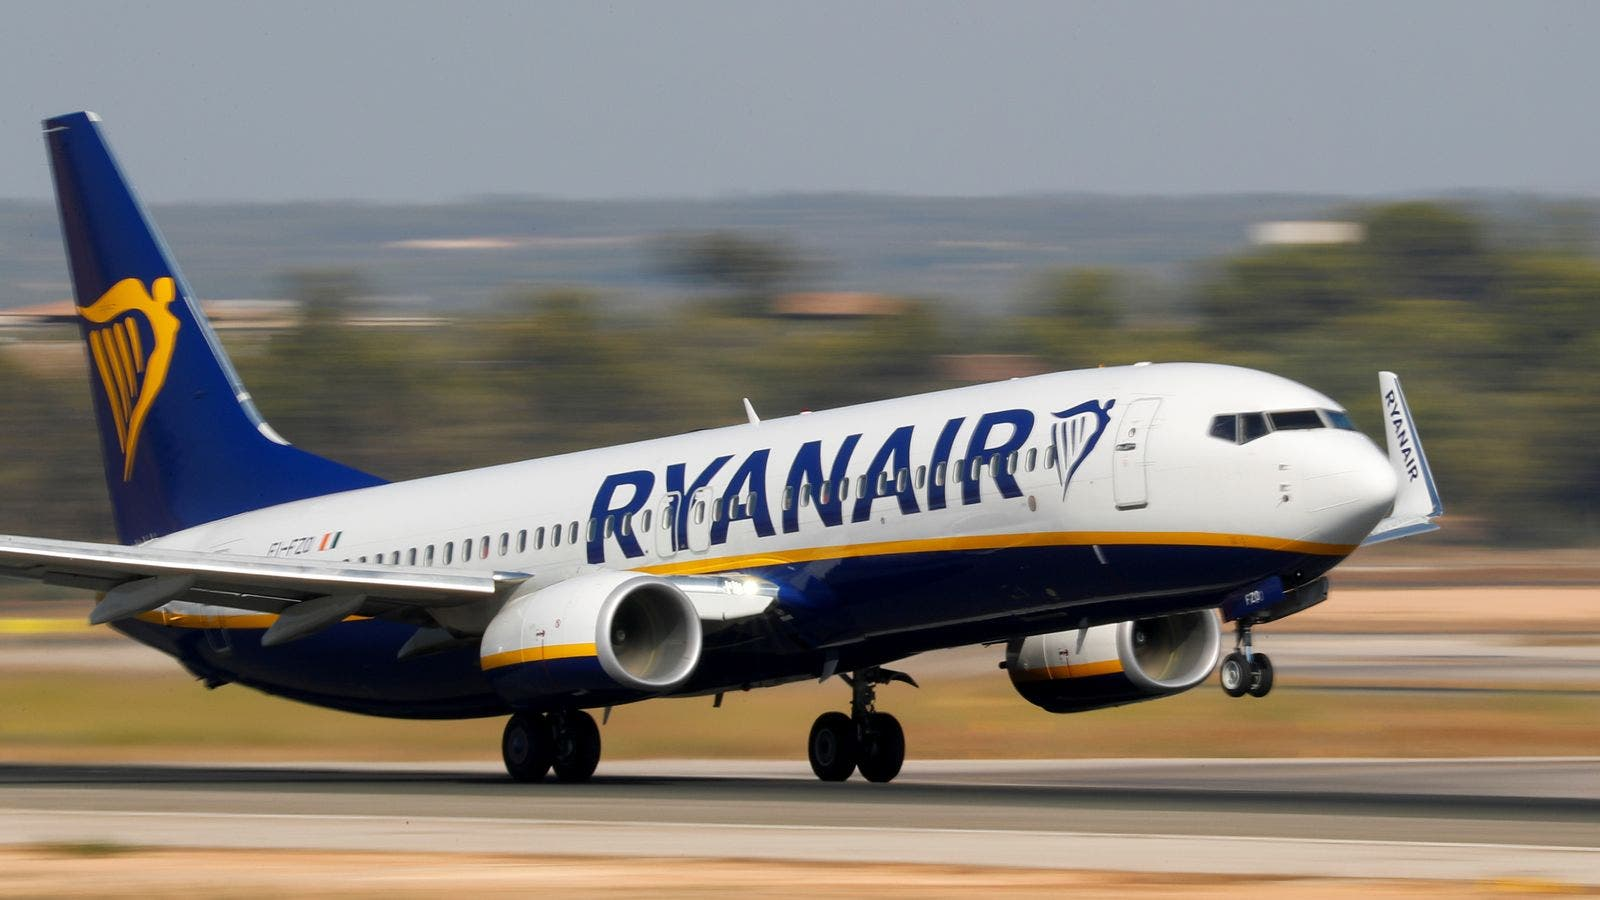 Ryanair England: No Refunds for Operating Flights